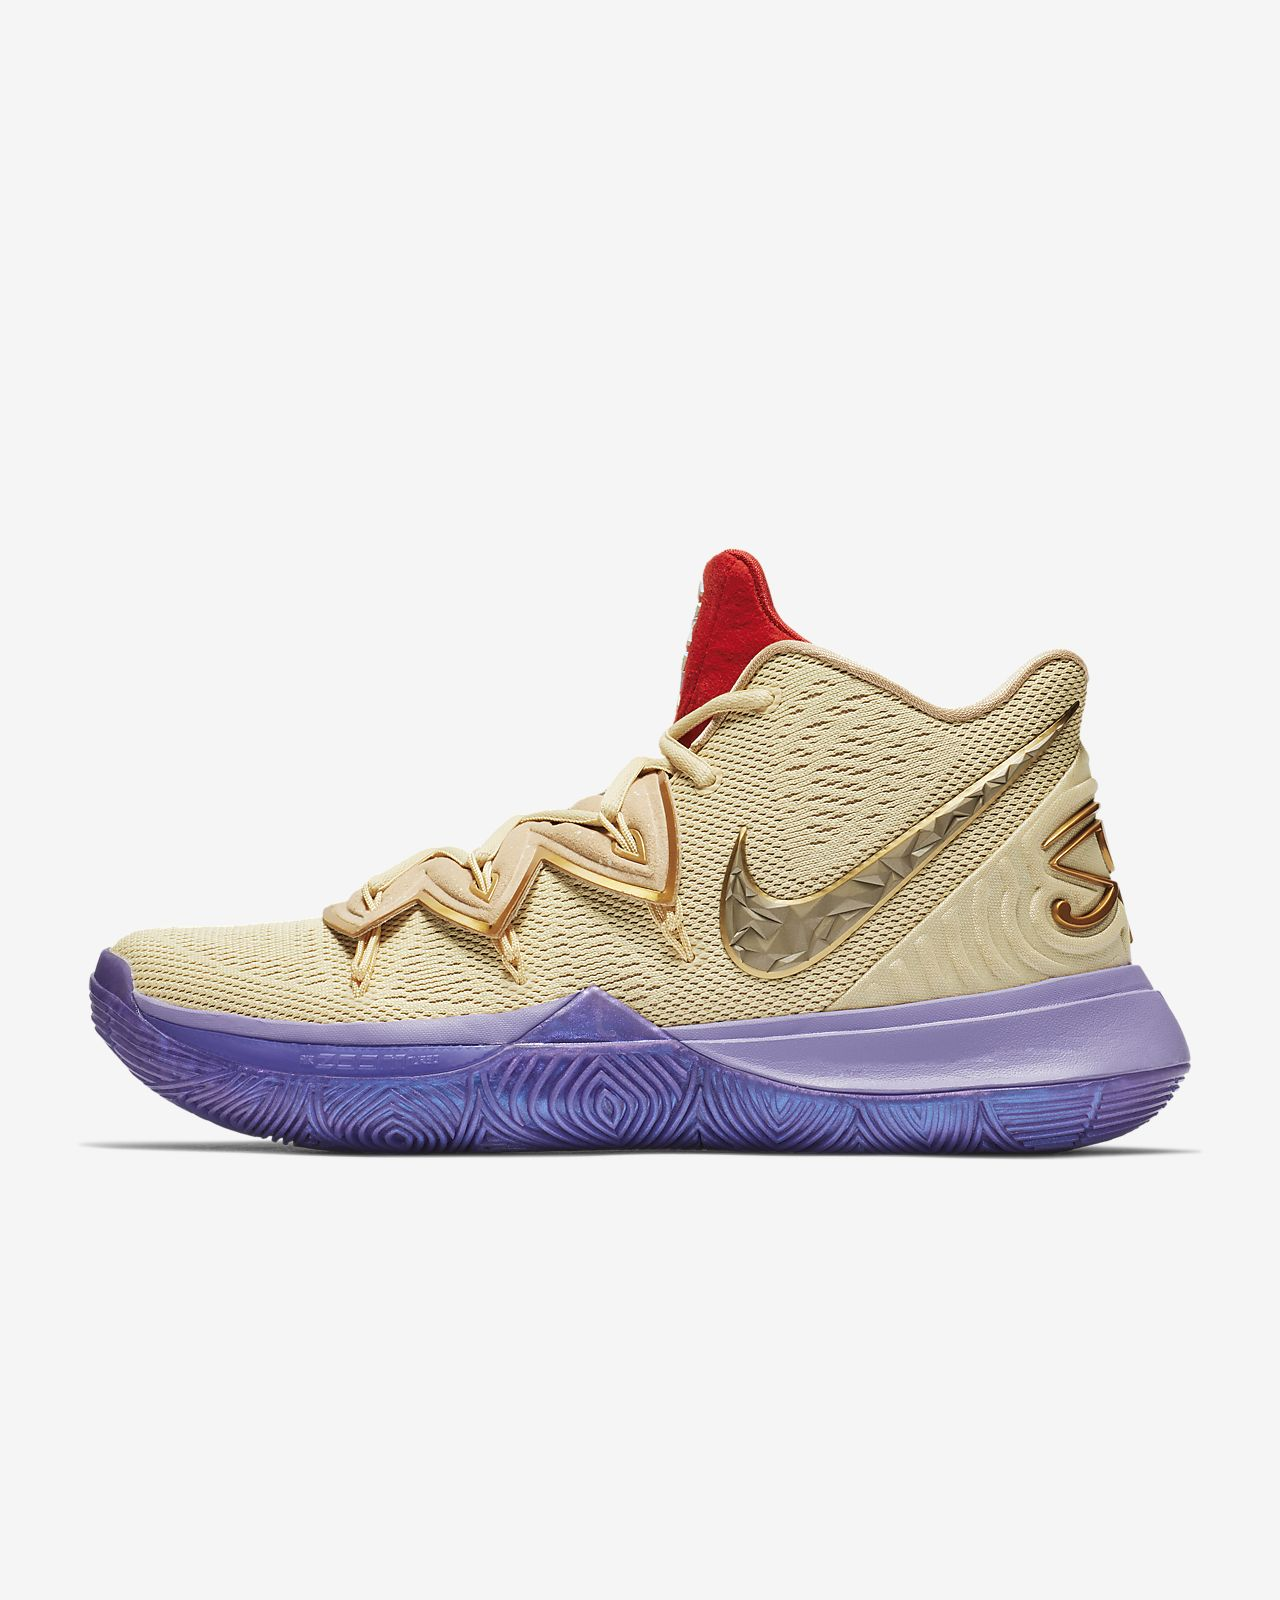 size 40 0398c 2f405 Kyrie concepts ikhet pe basketball shoe jpg 1280x1600 Basketball shoe  concepts